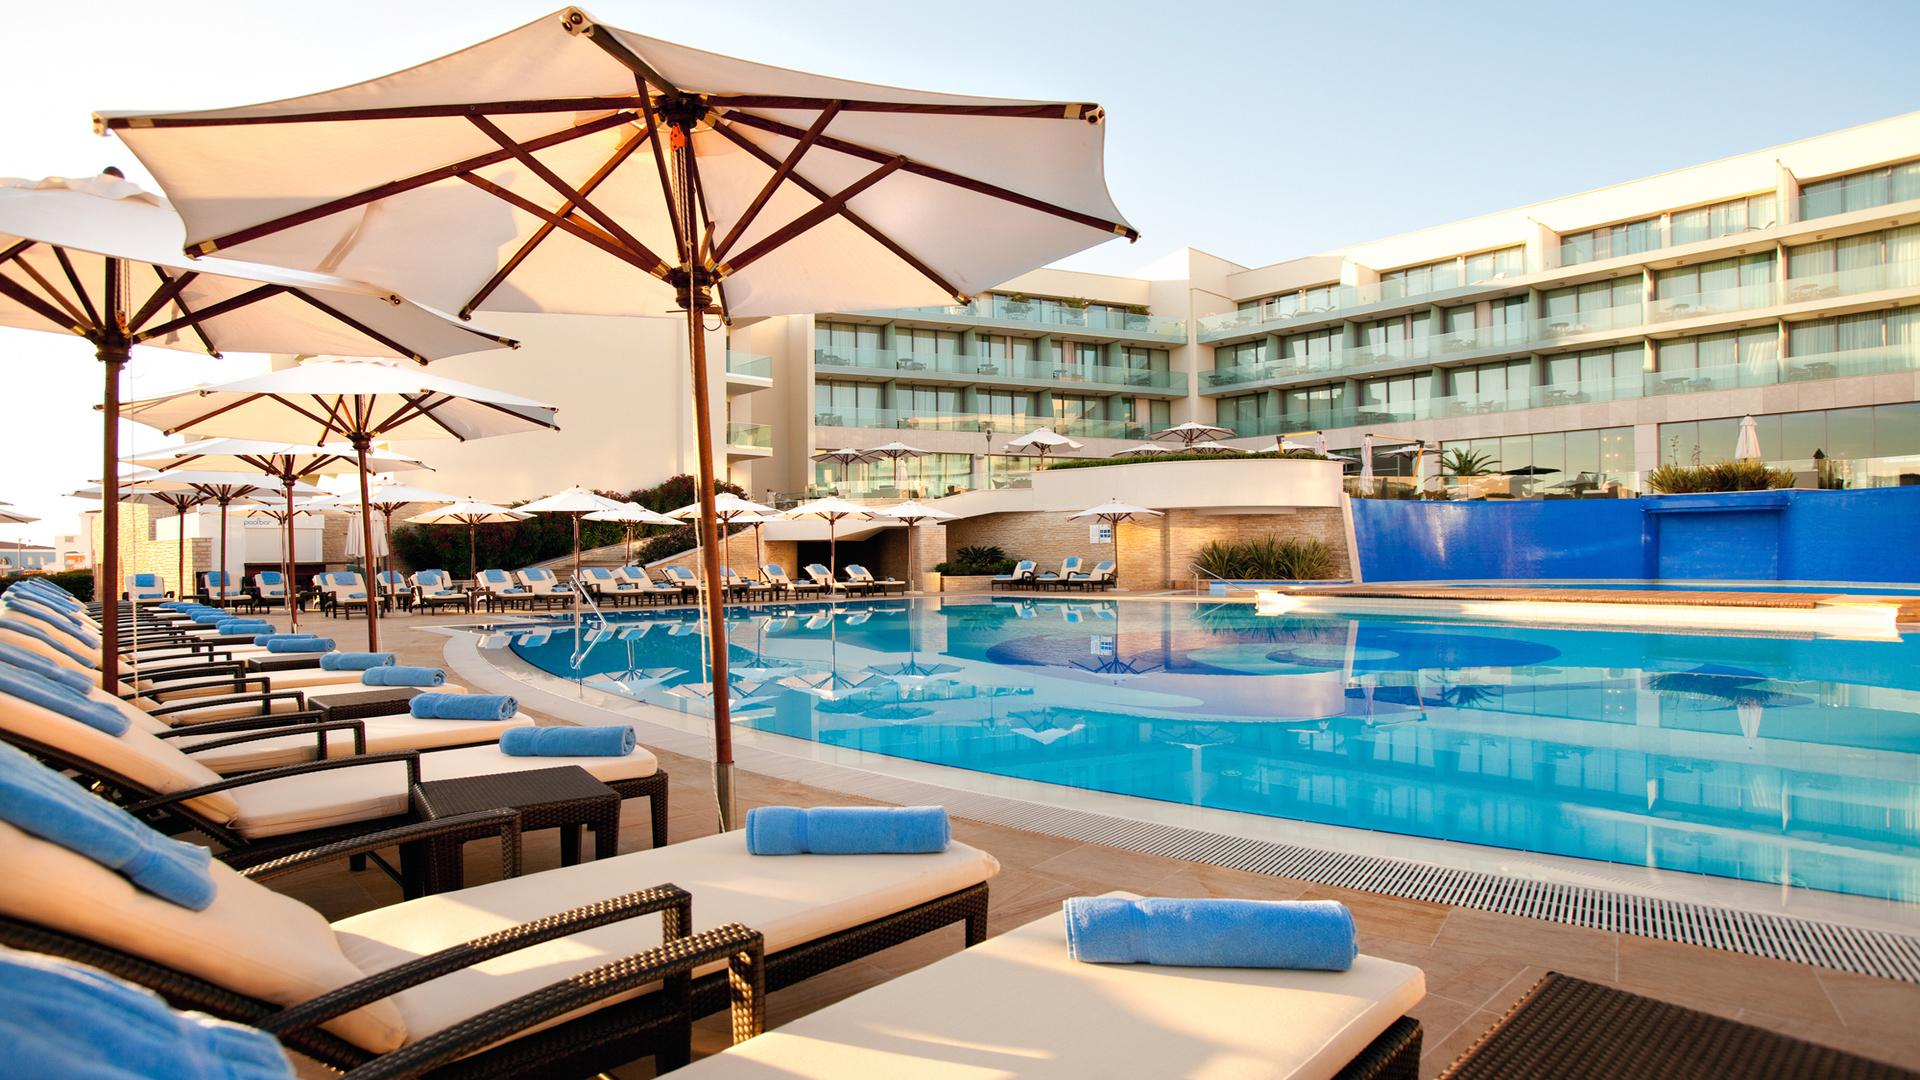 Thrive on with Infor SunSystems for Hospitality